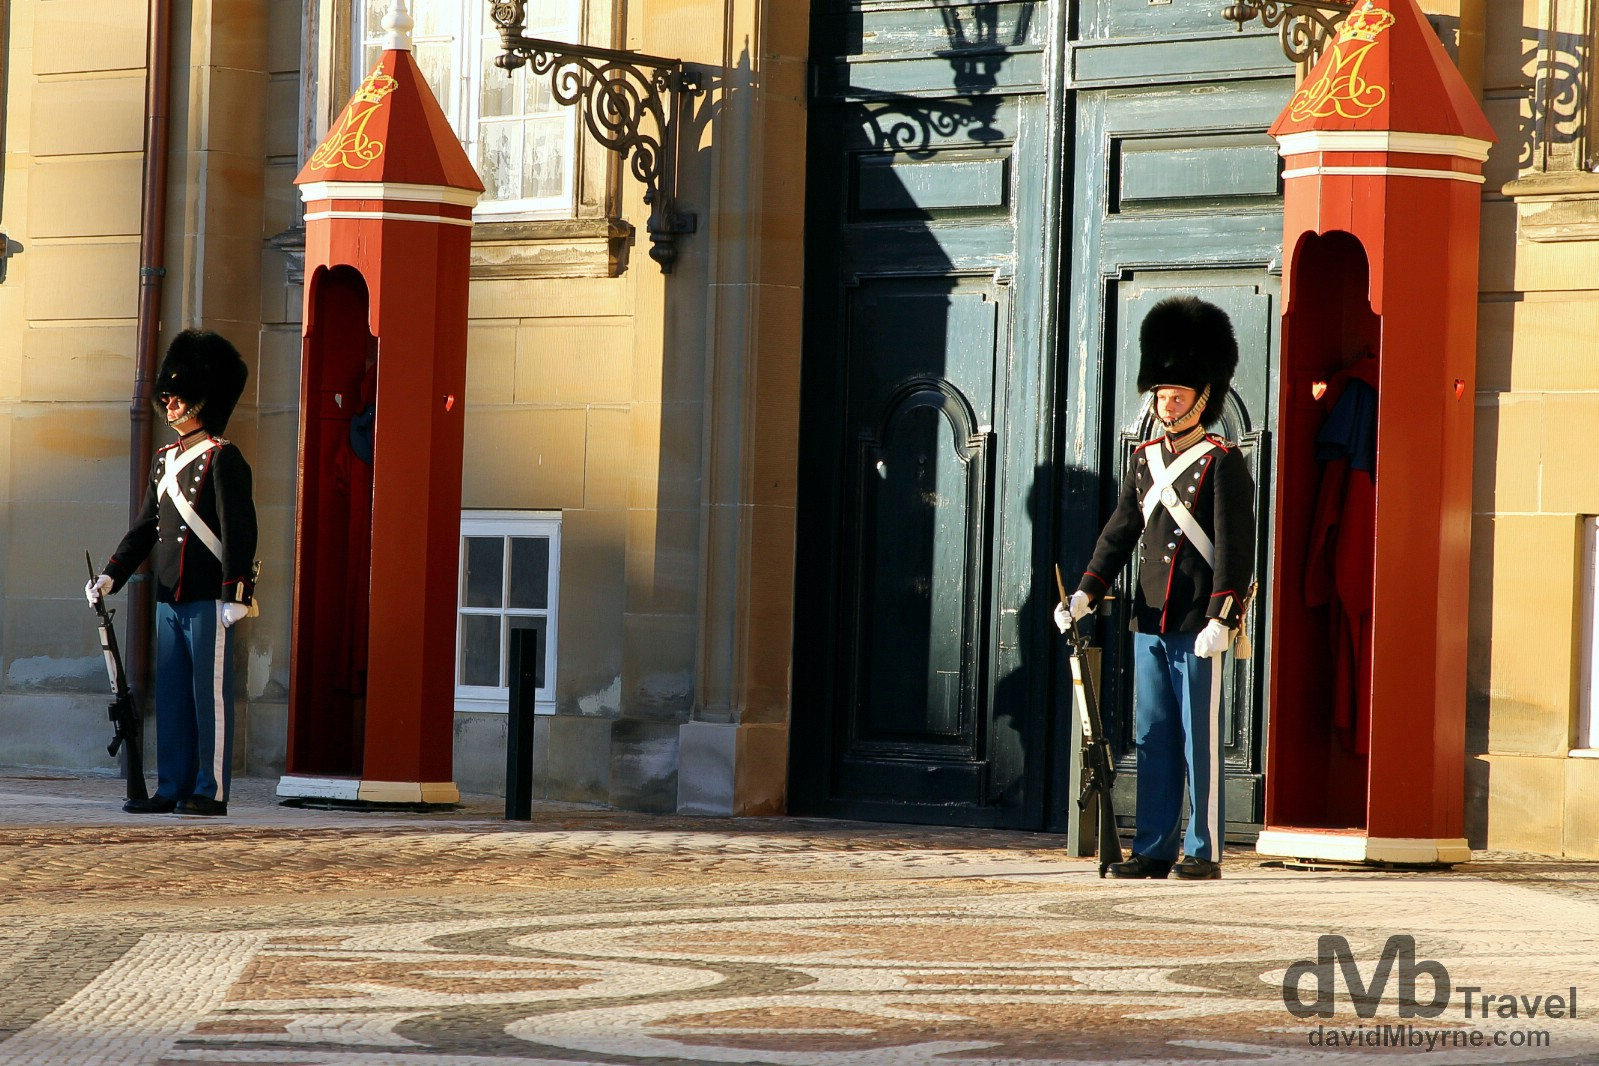 Guards outside Amalienborg, the winter residence of the Danish Royal family, in Copenhagen, Denmark. March 12th, 2014.